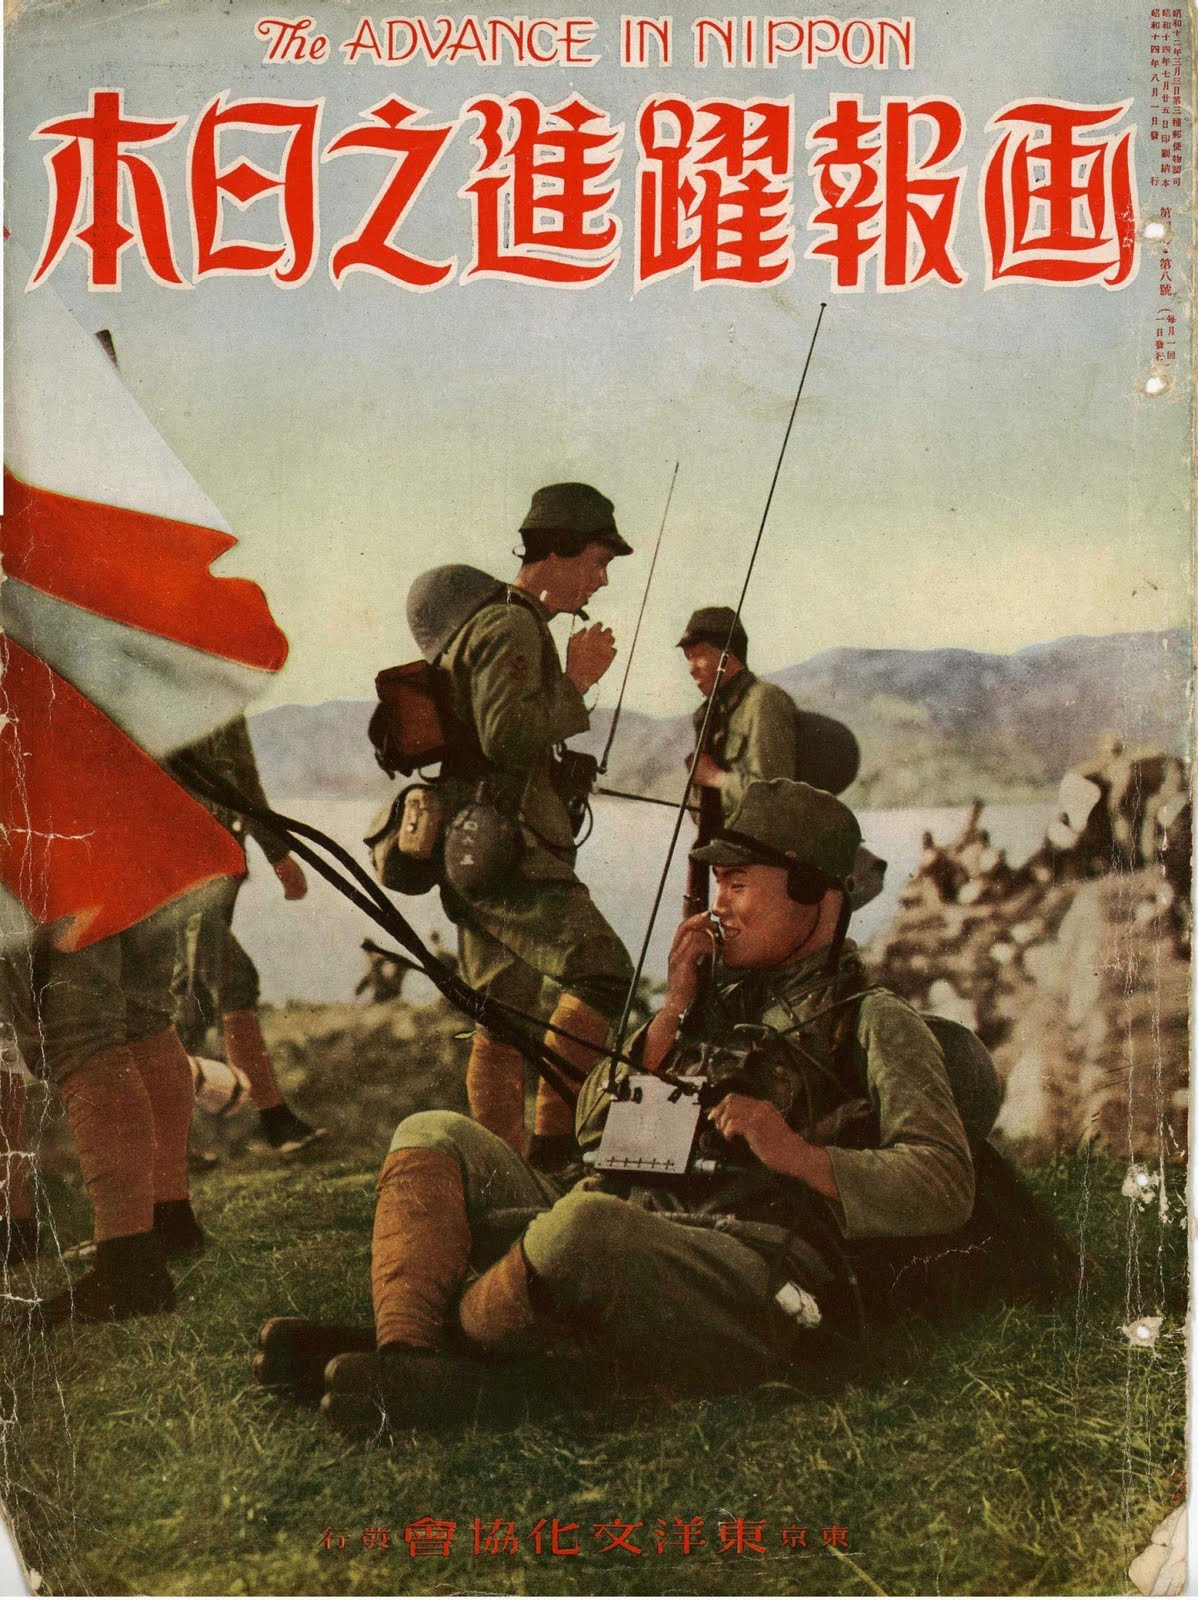 Advance_in_Nippon_1939.jpg